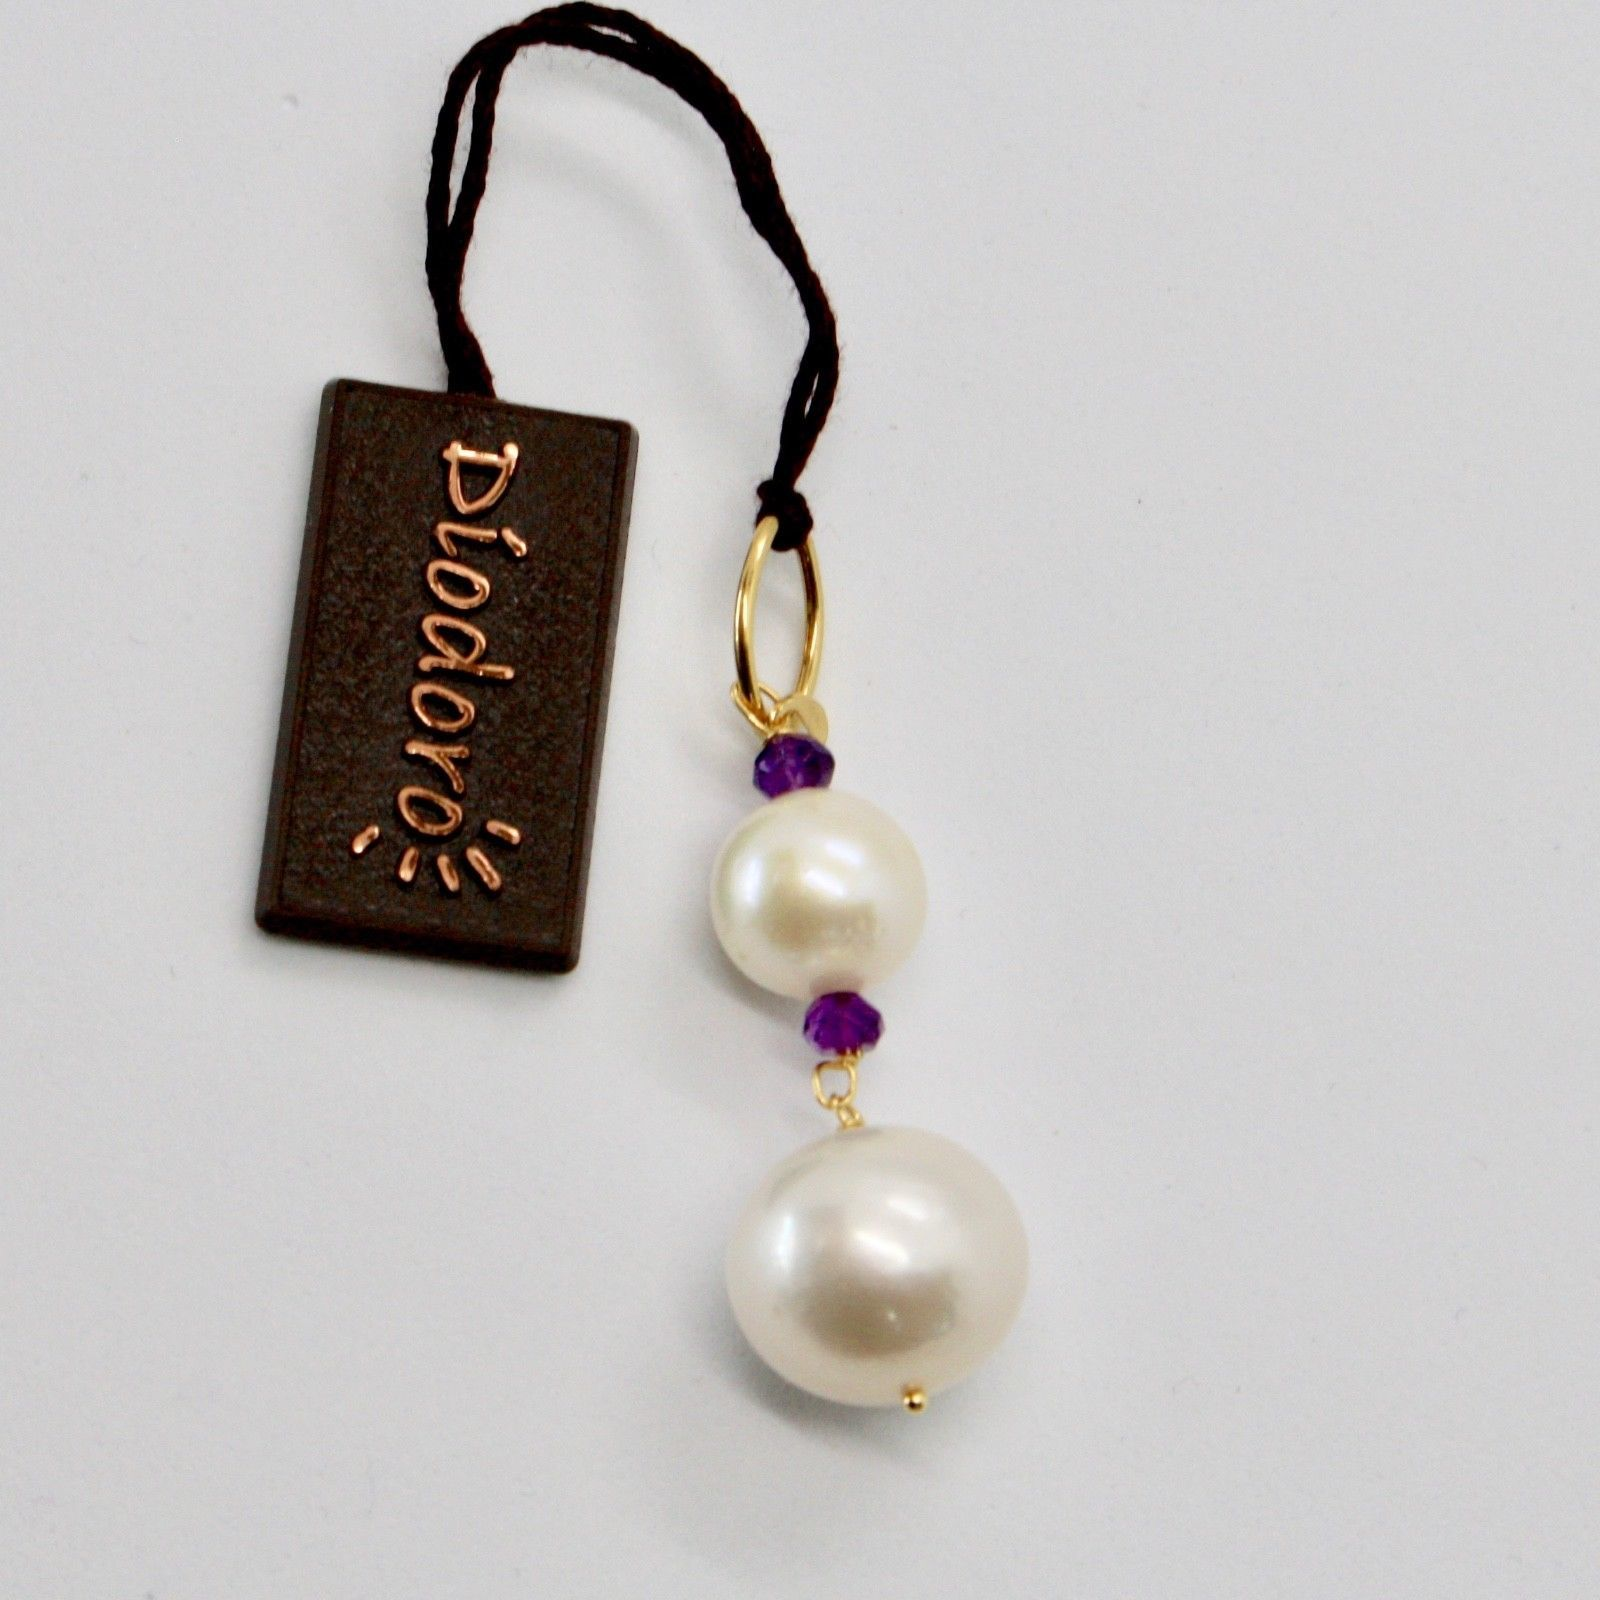 PENDANT YELLOW GOLD 18K WITH WHITE PEARLS FRESH WATER AND AMETHYST